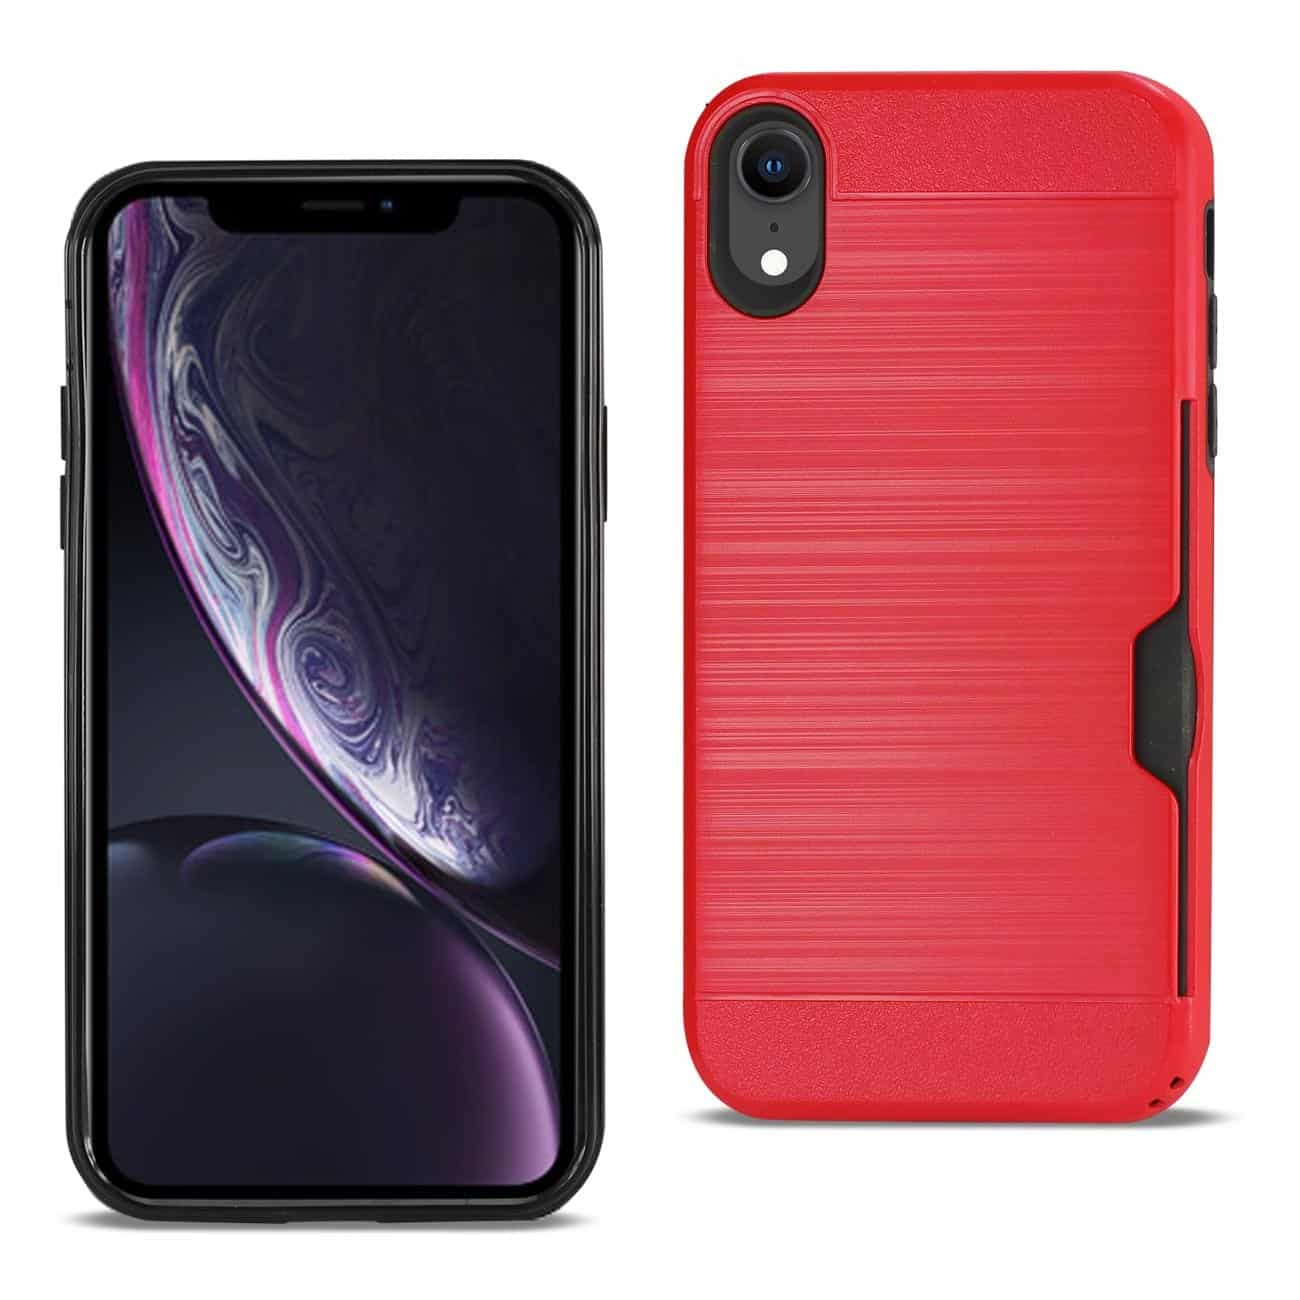 iPhone XR Slim Armor Hybrid Case With Card Holder In Red